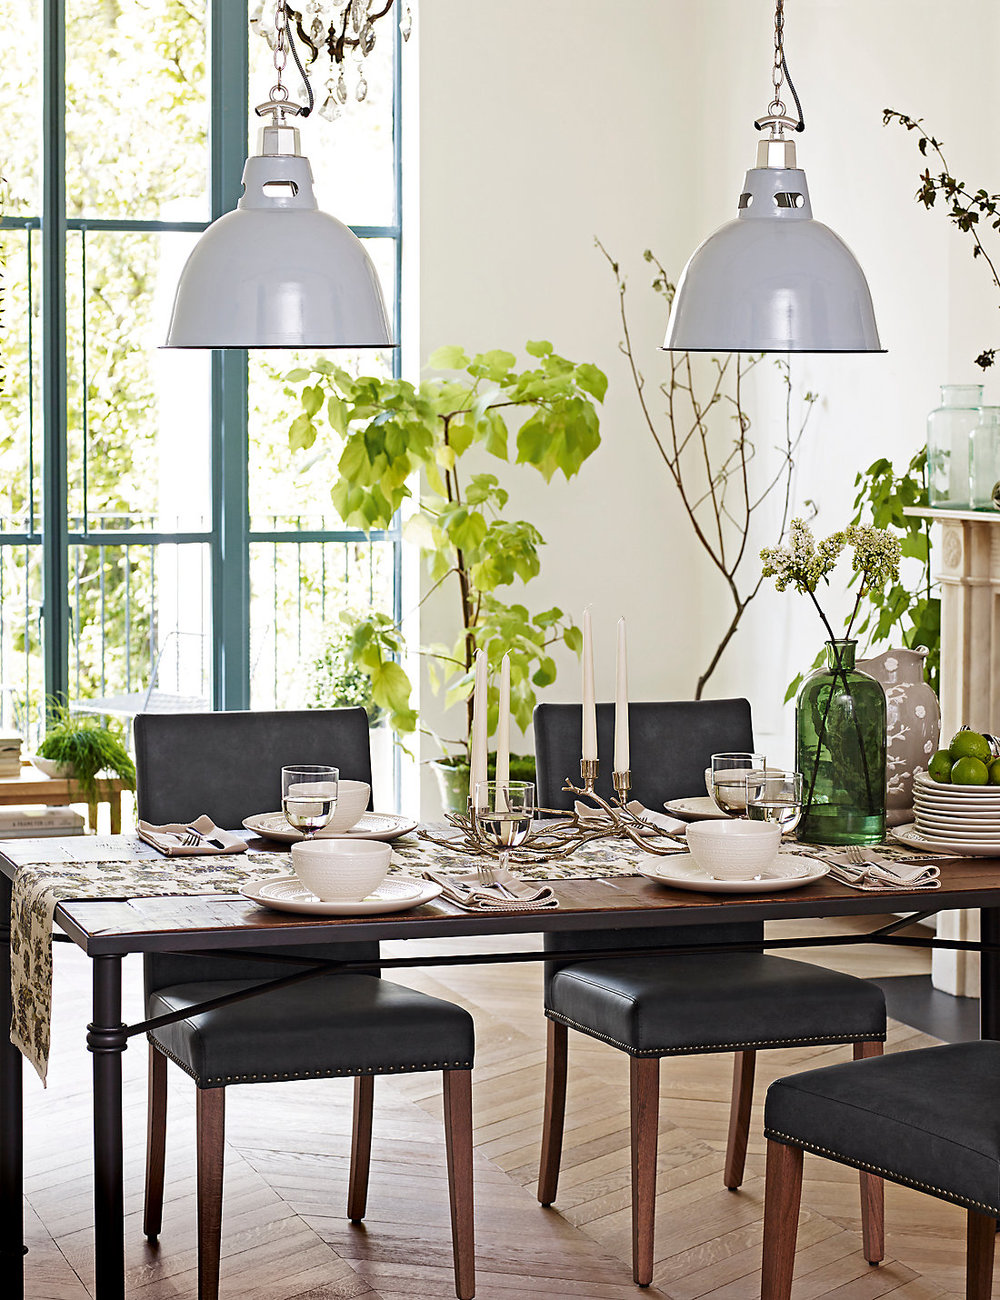 Marks Spencer - Sandford Dining Table.jpeg